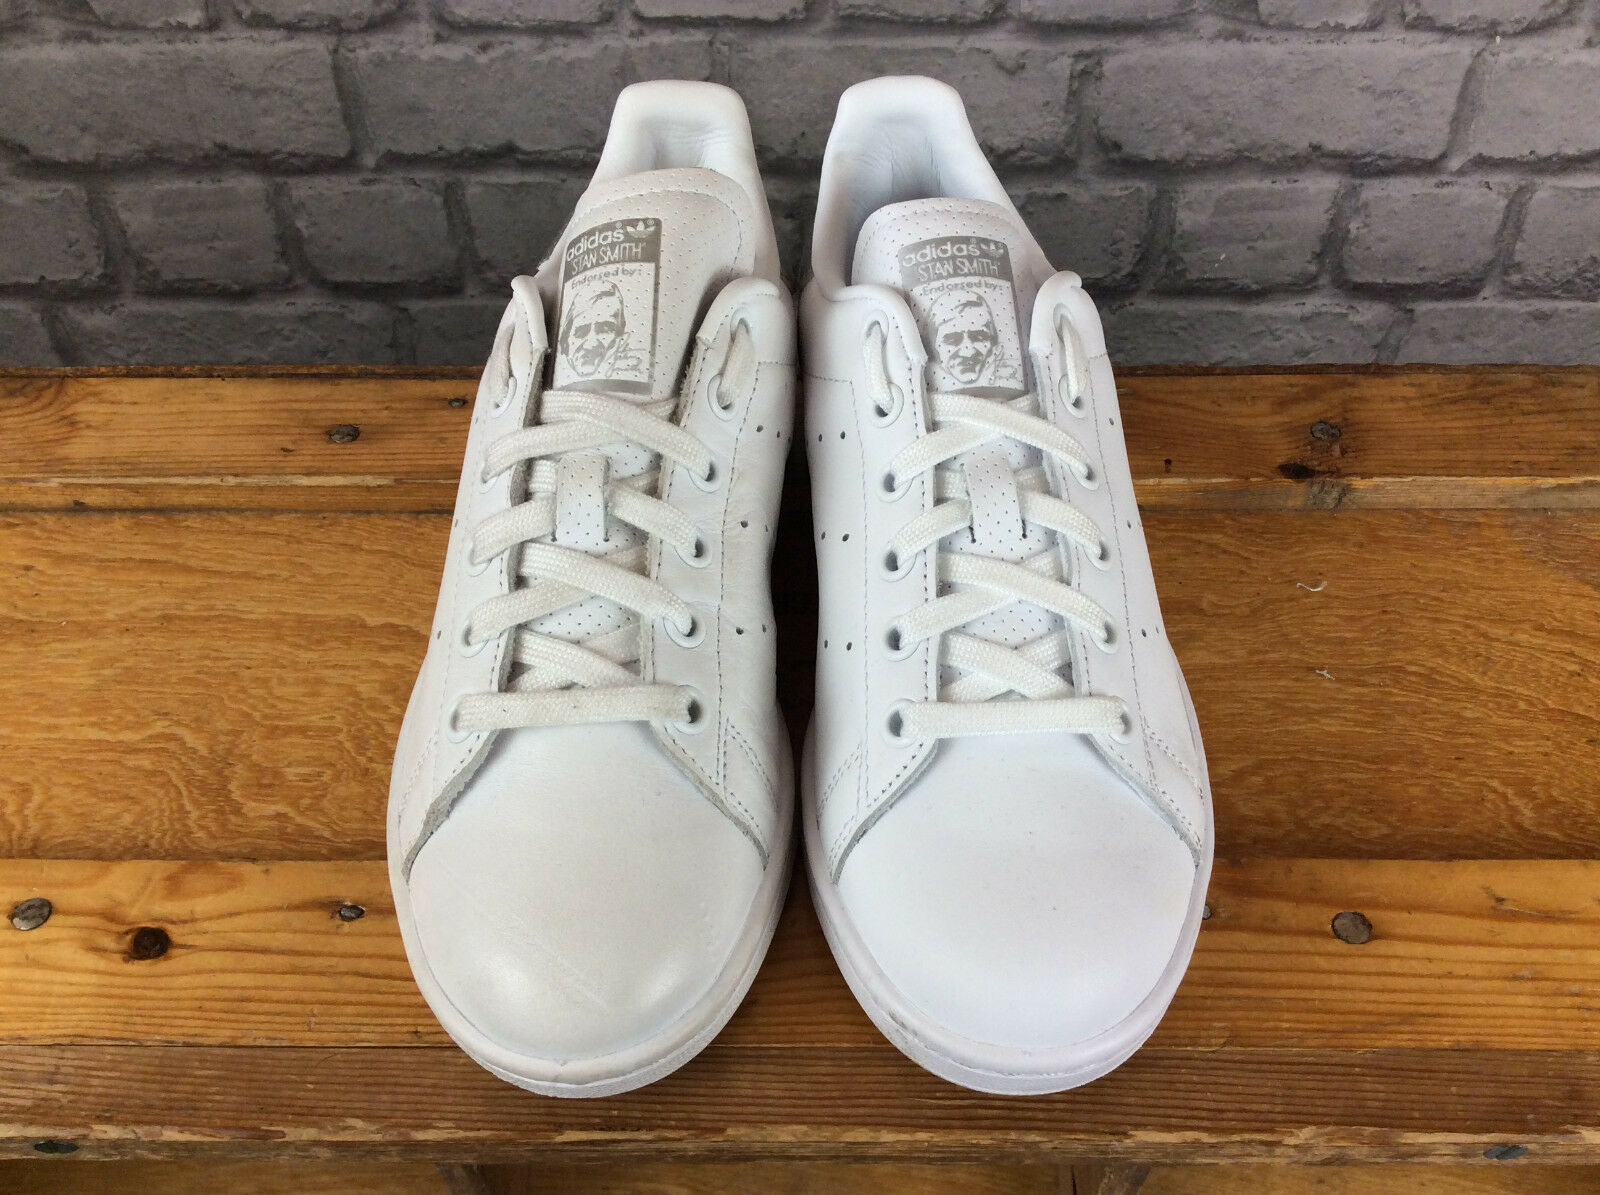 ADIDAS LADIES UK 5 EU 38 TRAINERS WHITE SILVER STAN SMITH TRAINERS 38 PERFORATED bef287